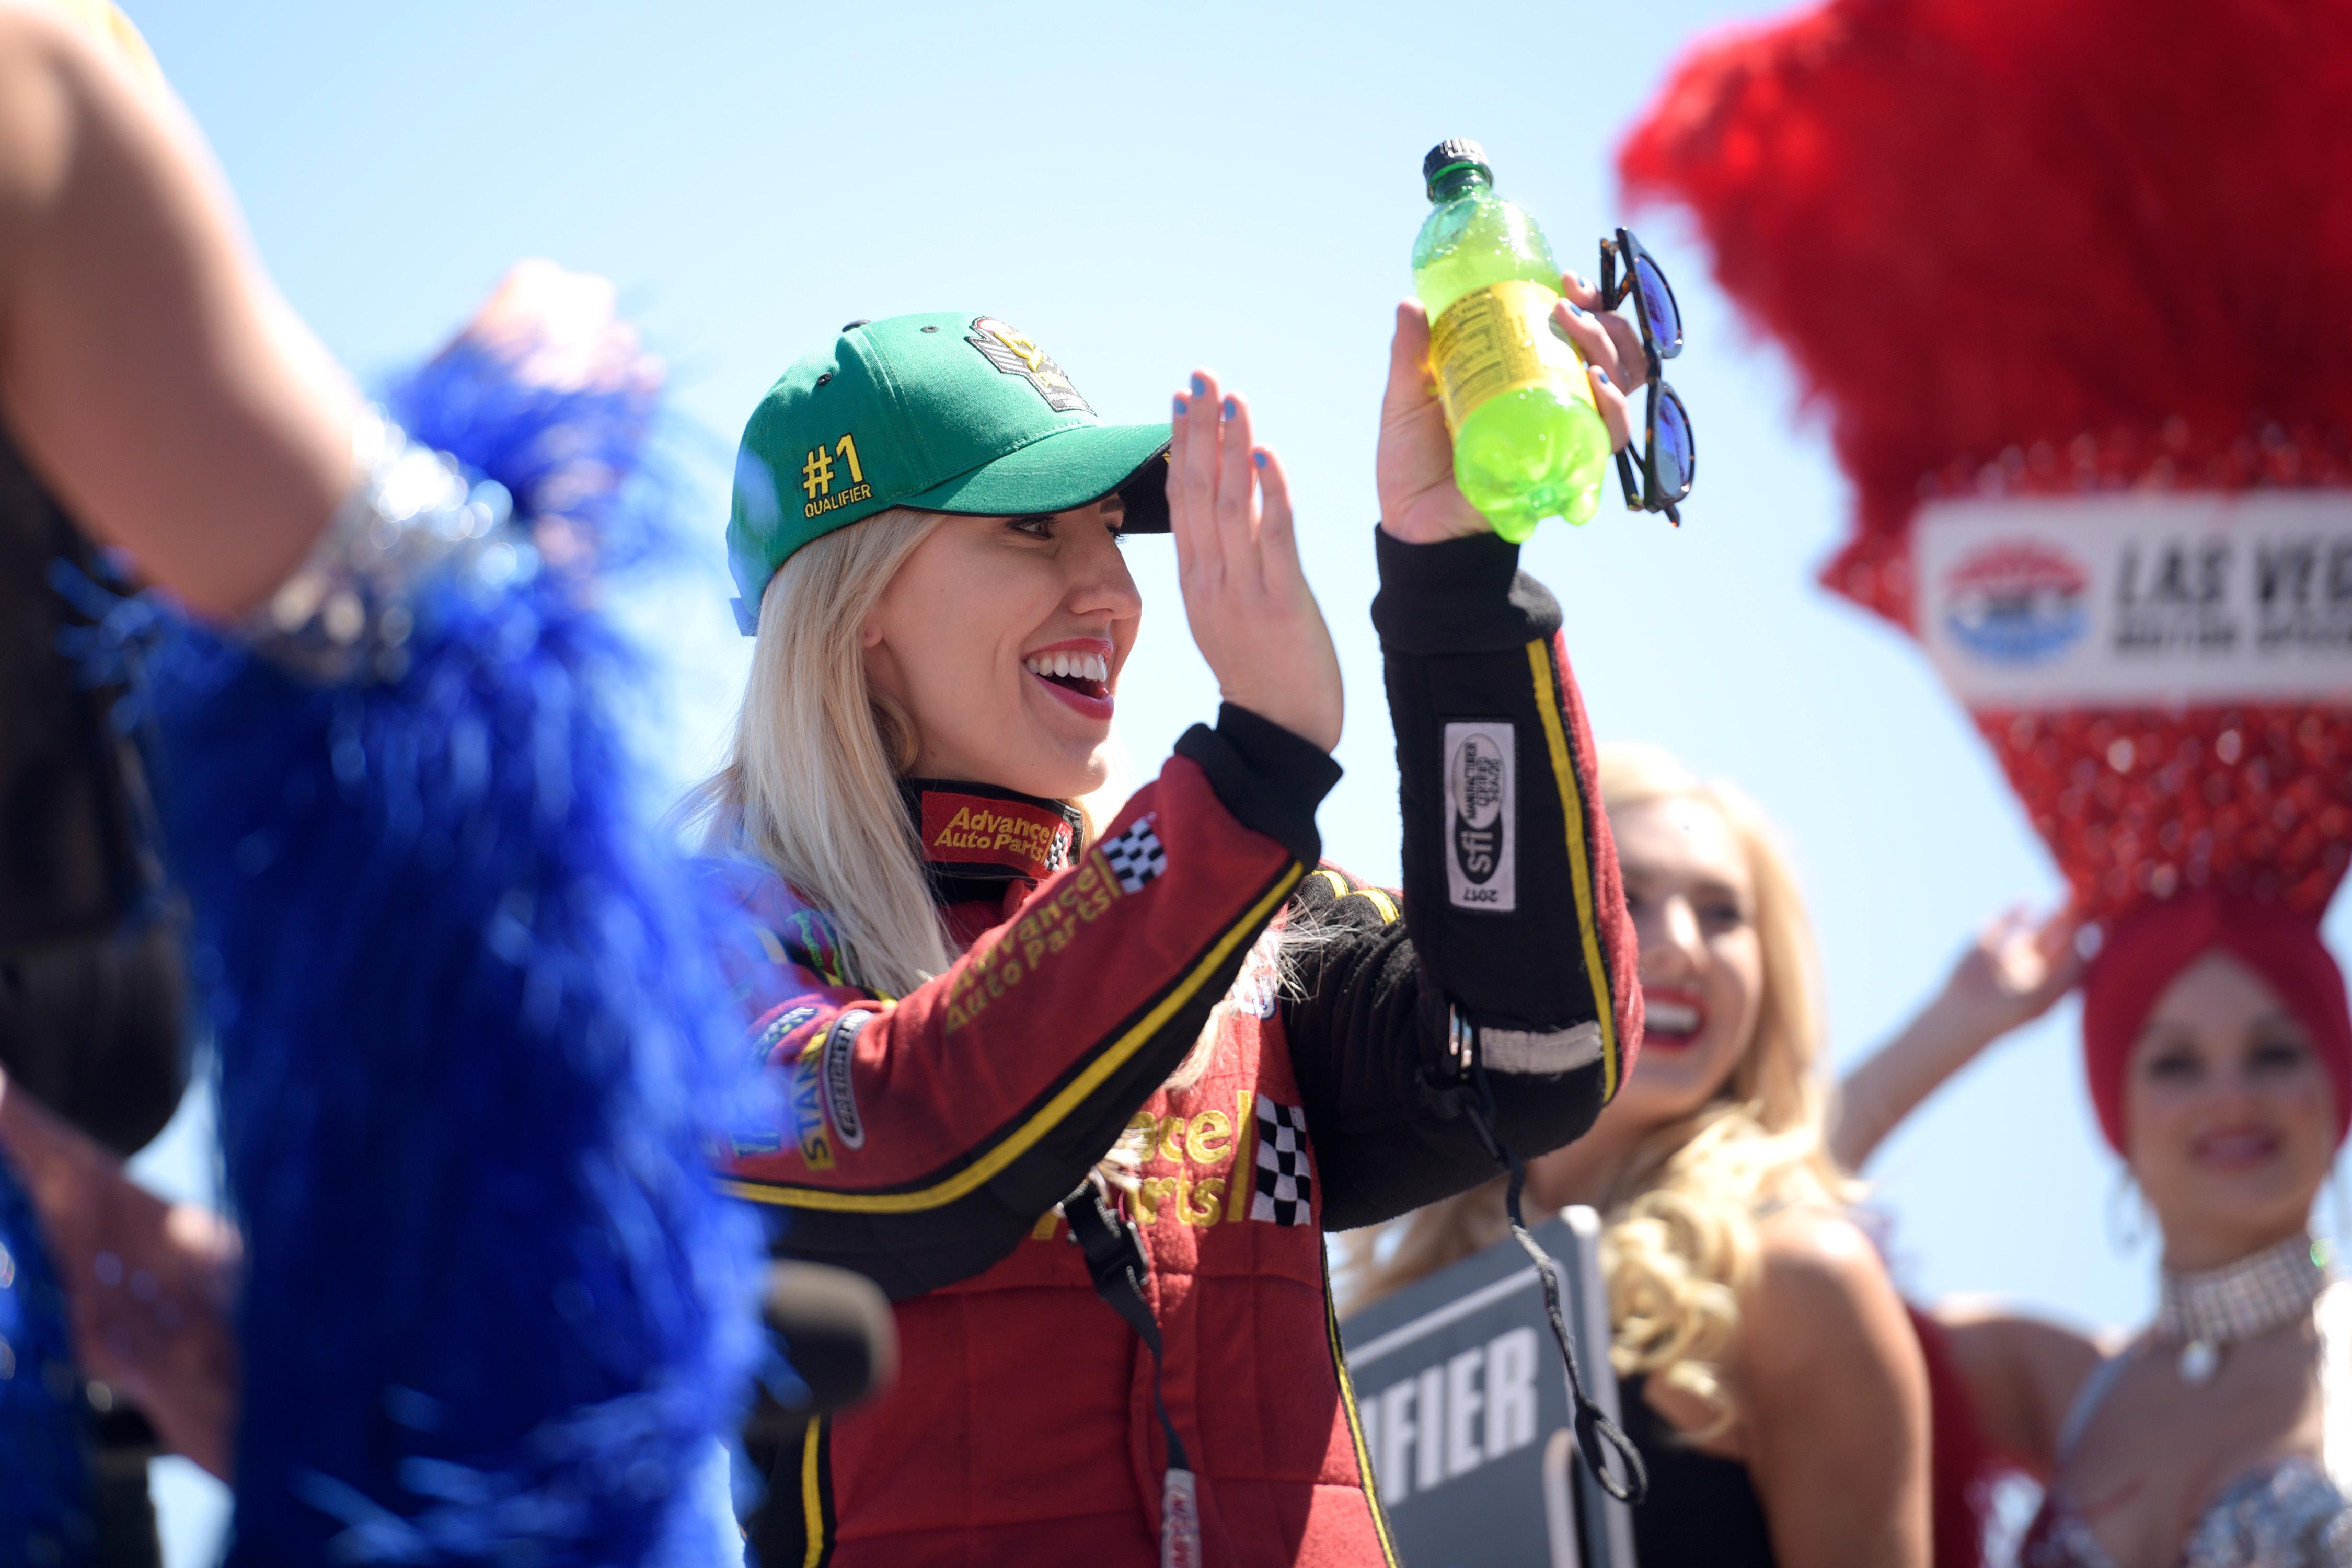 Funny Car top qualifier Courtney Force is introduced during the NHRA DENSO Spark Plug Nationals at The Strip at the Las Vegas Motor Speedway Sunday, April 2, 2017. (Sam Morris/Las Vegas News Bureau)